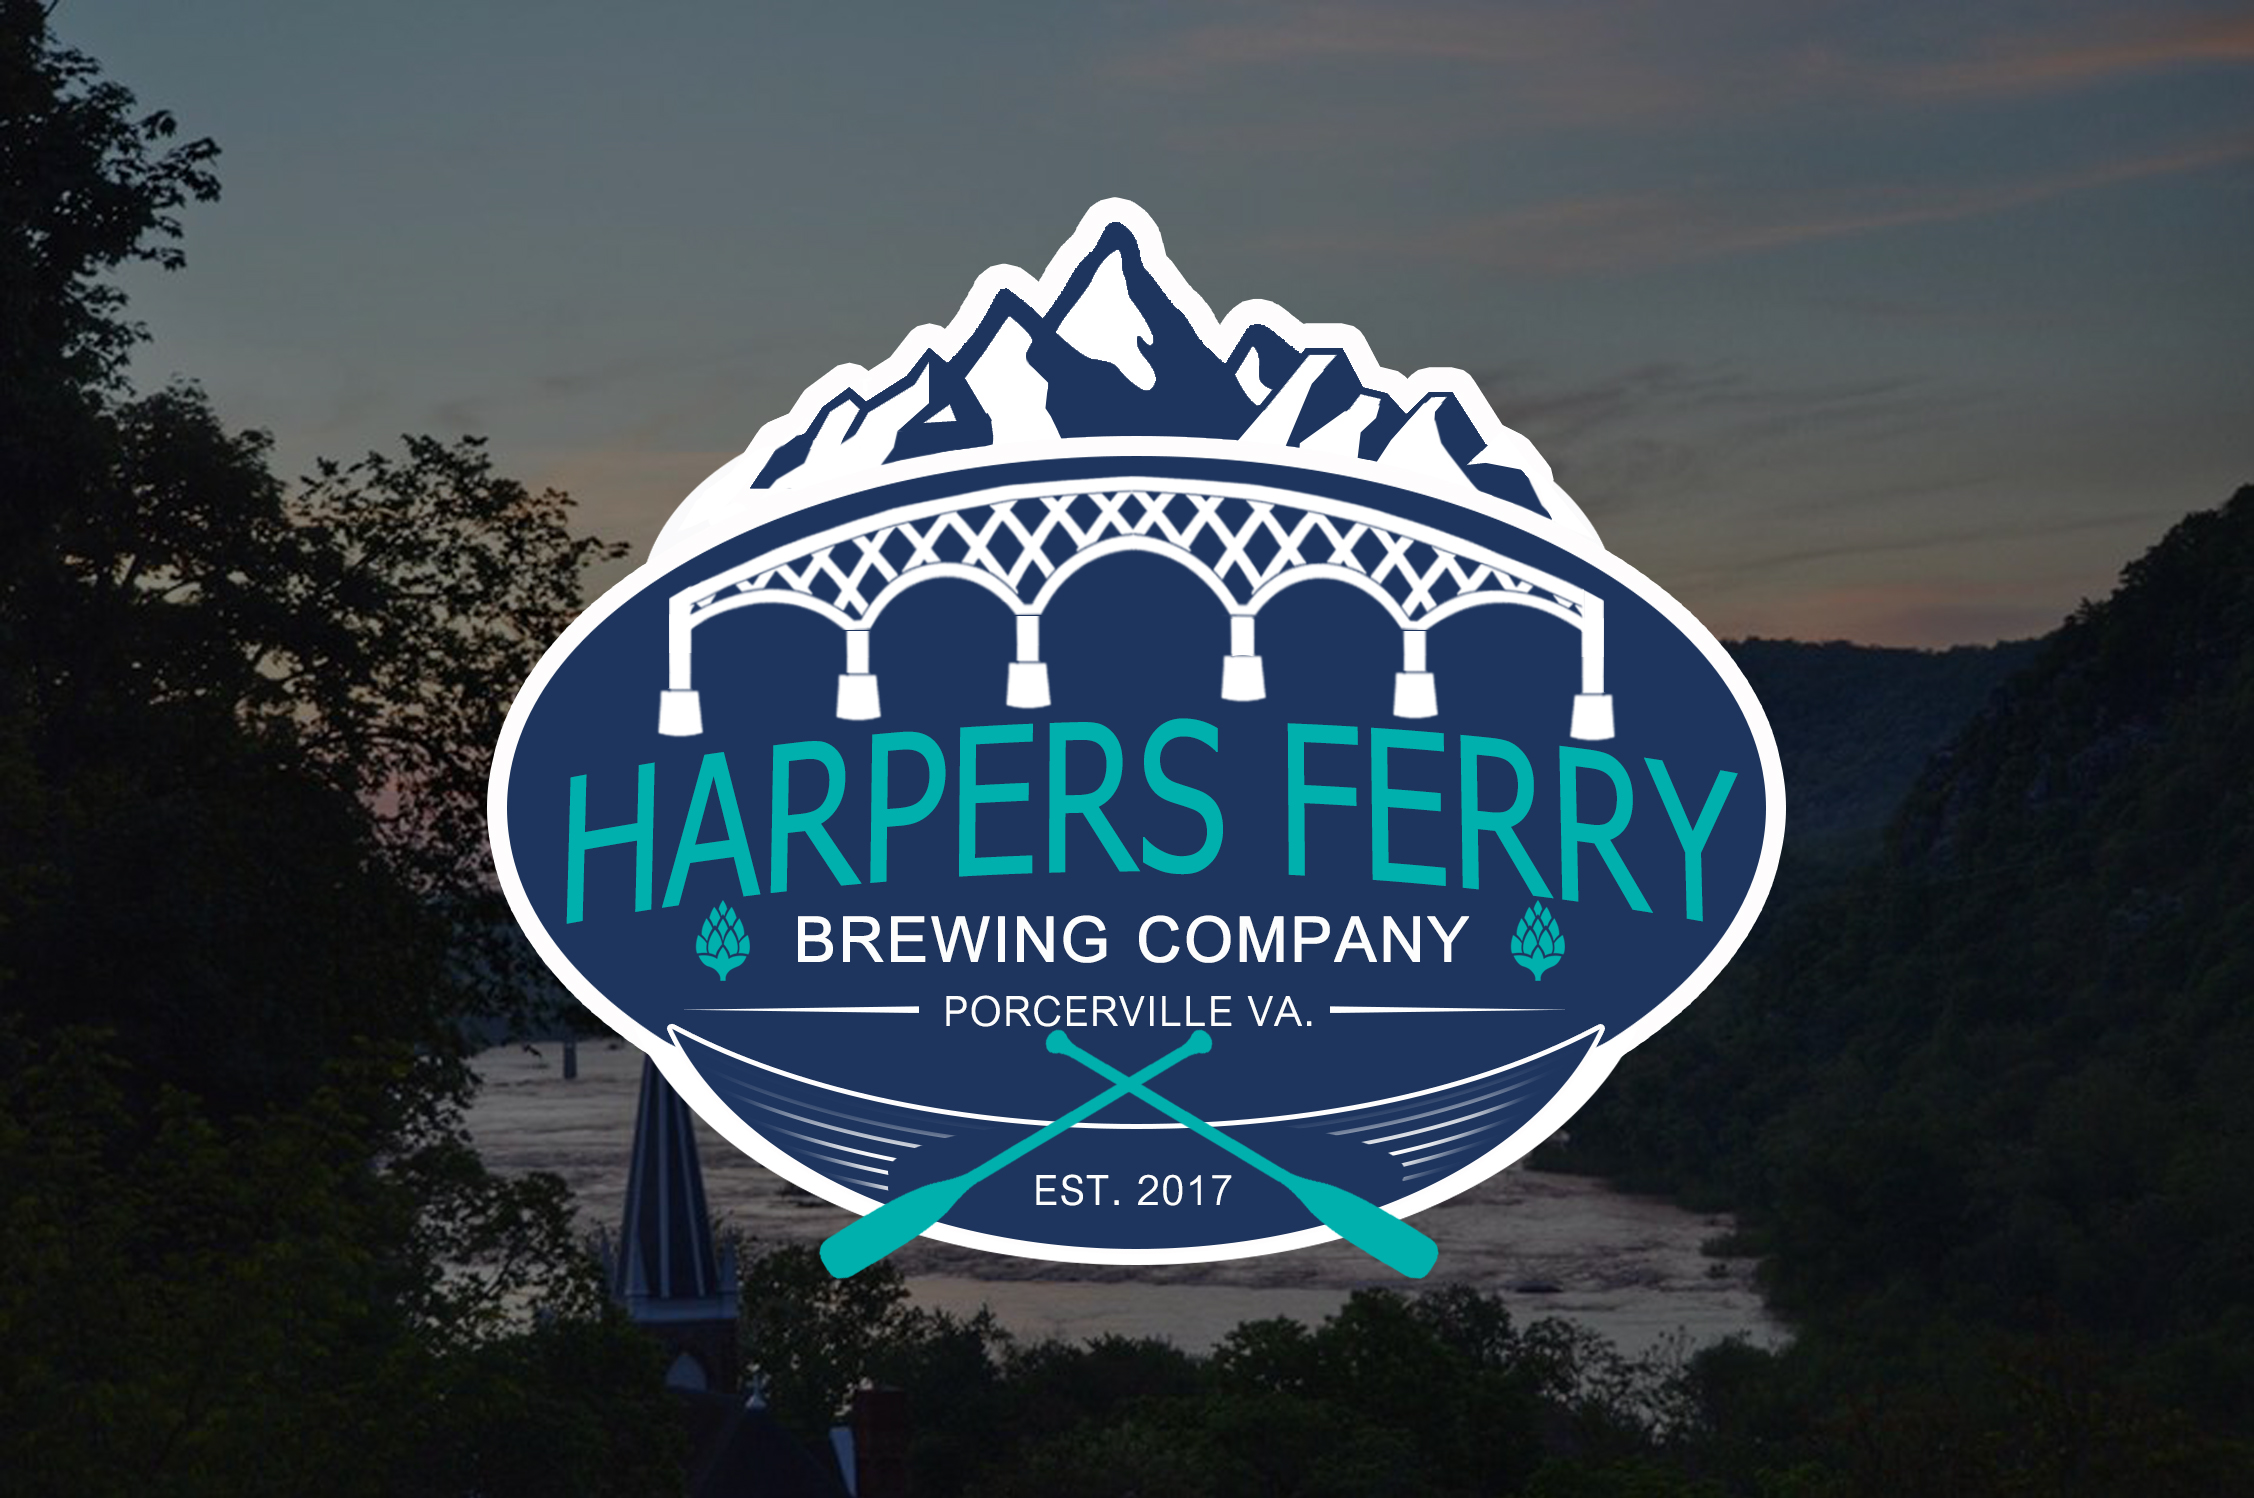 Logo Design by JSDESIGNGROUP - Entry No. 49 in the Logo Design Contest Unique Logo Design Wanted for Harpers ferry brewing company.